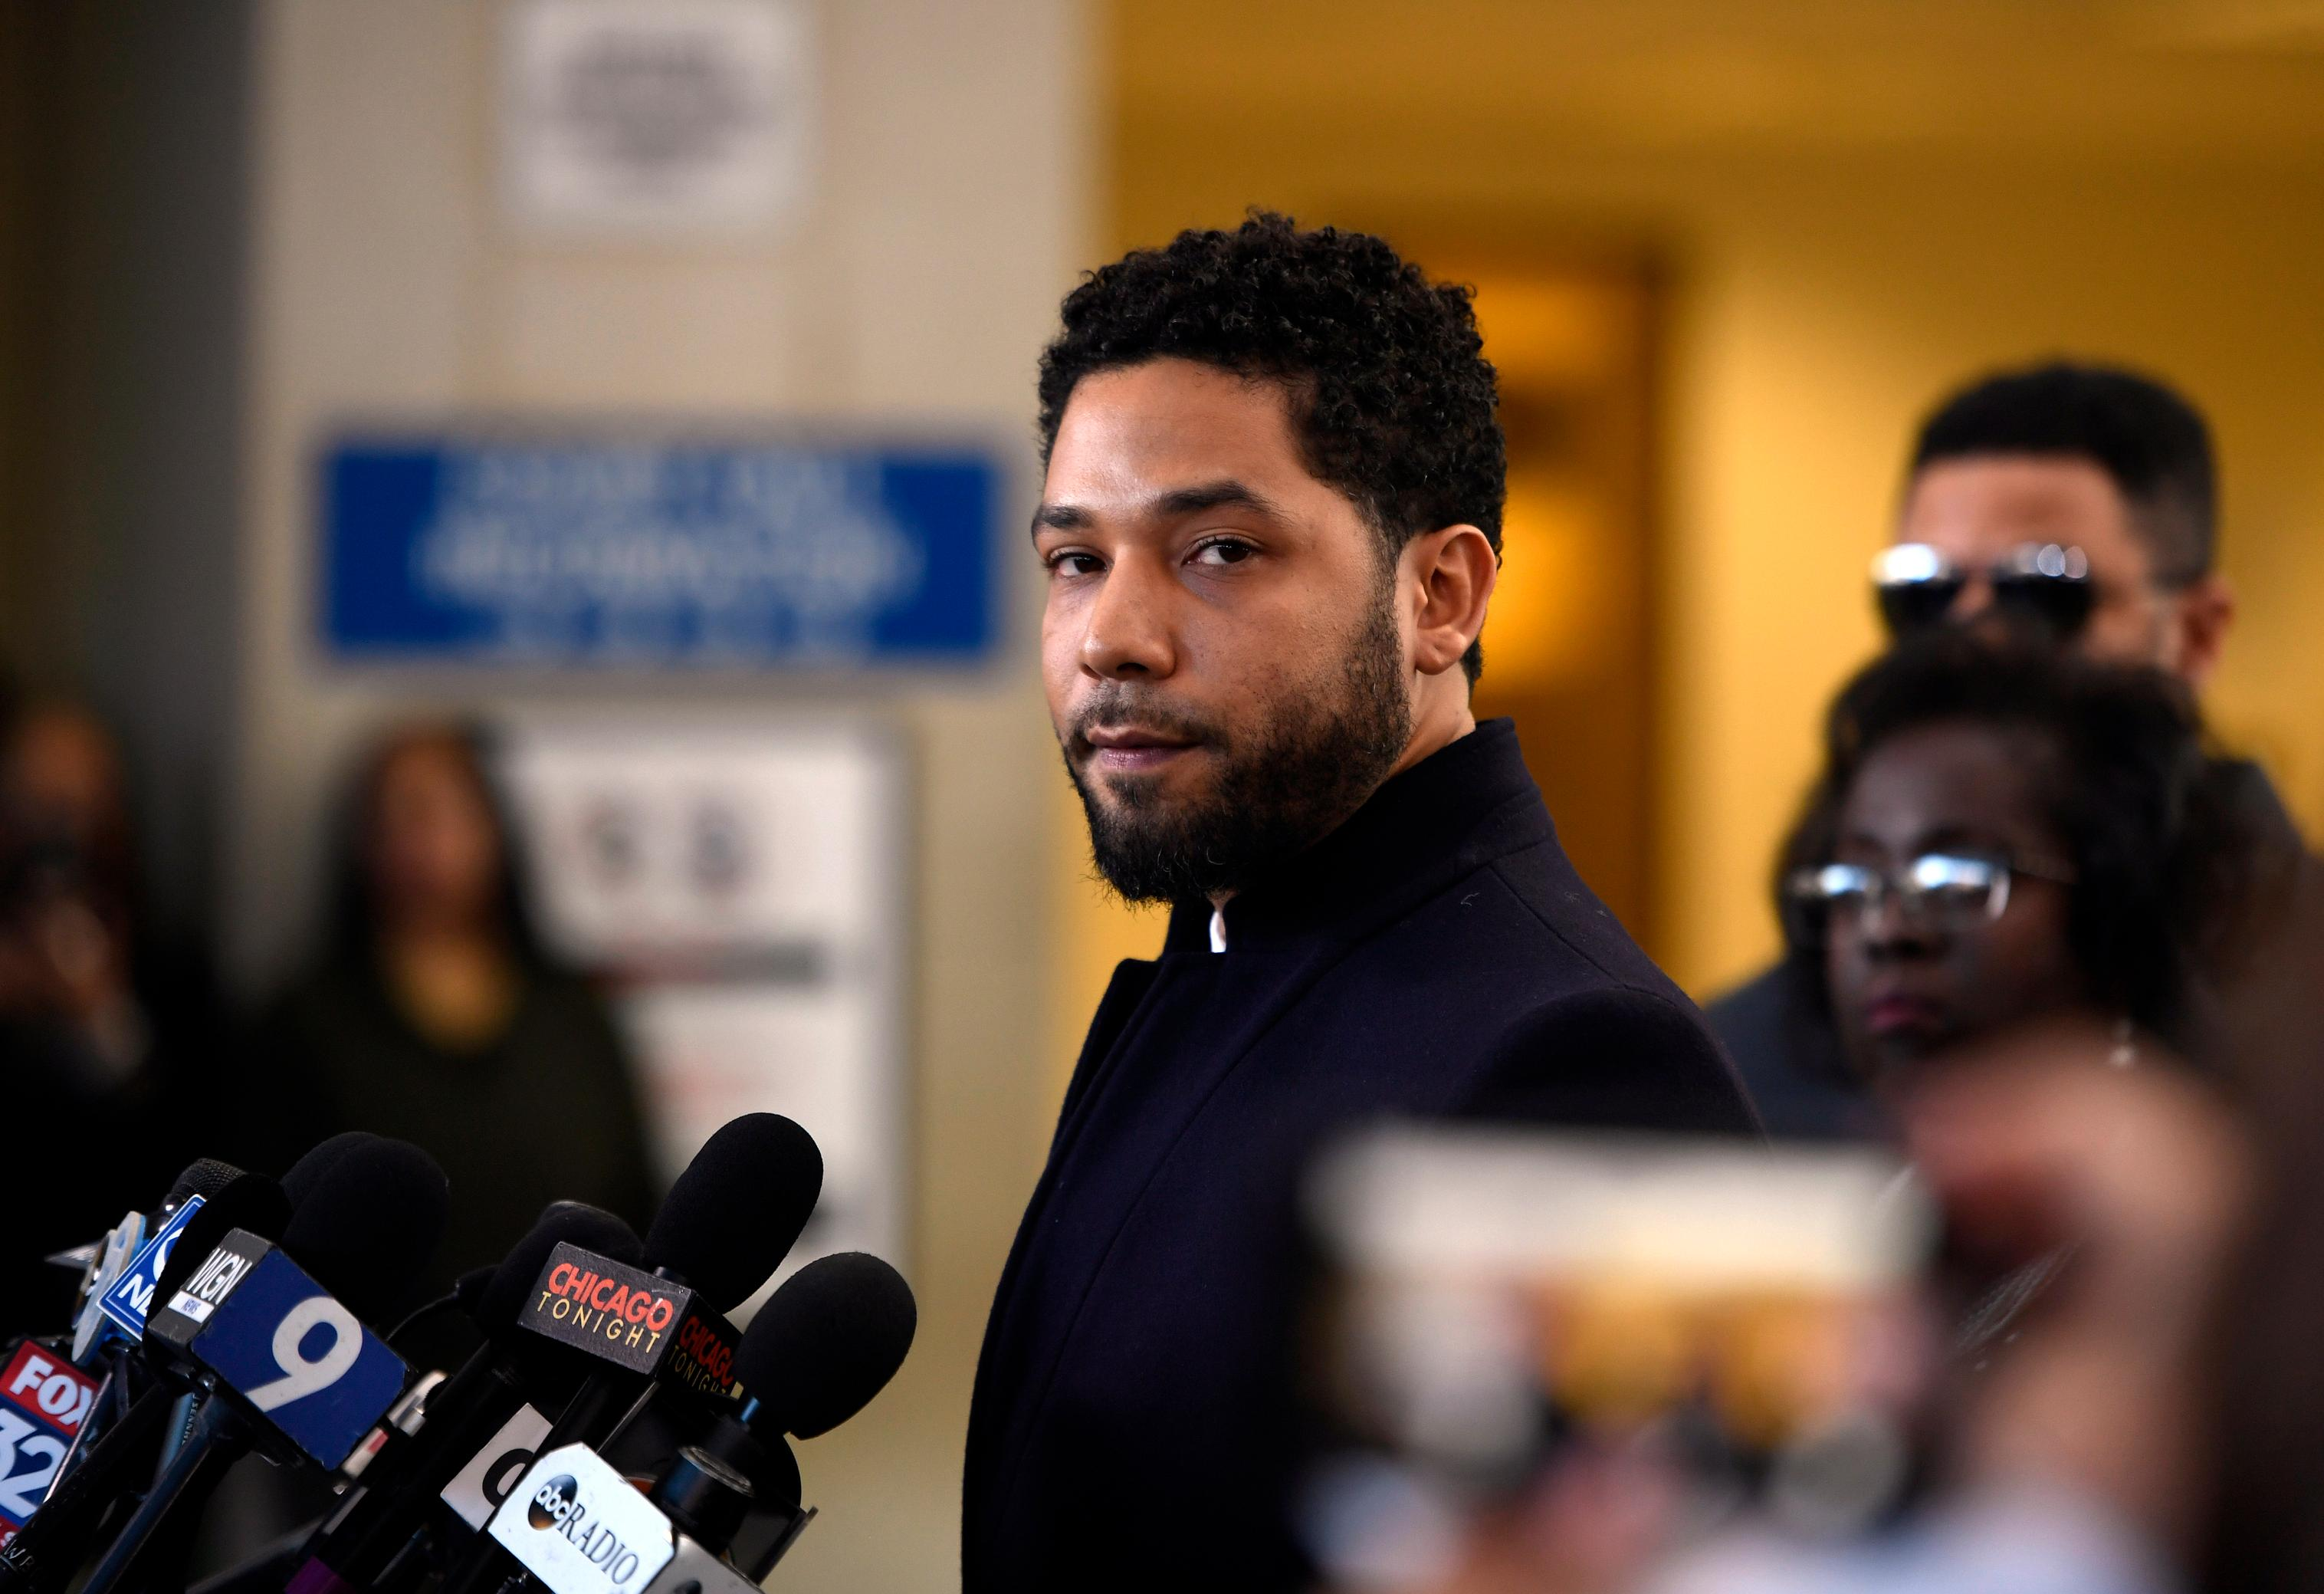 "FILE - In this March 26, 2019 file photo, Actor Jussie Smollett talks to the media before leaving Cook County Court after his charges were dropped, in Chicago. Chicago's top prosecutor has released 2,000 documents in the Jussie Smollett's case and explained she recused herself from an investigation into his claim he'd been the target of a racist, anti-gay attack solely because of false rumors she was related to the ""Empire"" actor. The Friday, May 31, 2019 statement from Cook County State's Attorney Kim Foxx came two months after her office's suddenly dropped all charges against Smollett that accused him of staging the attack on himself. (AP Photo/Paul Beaty, File)"